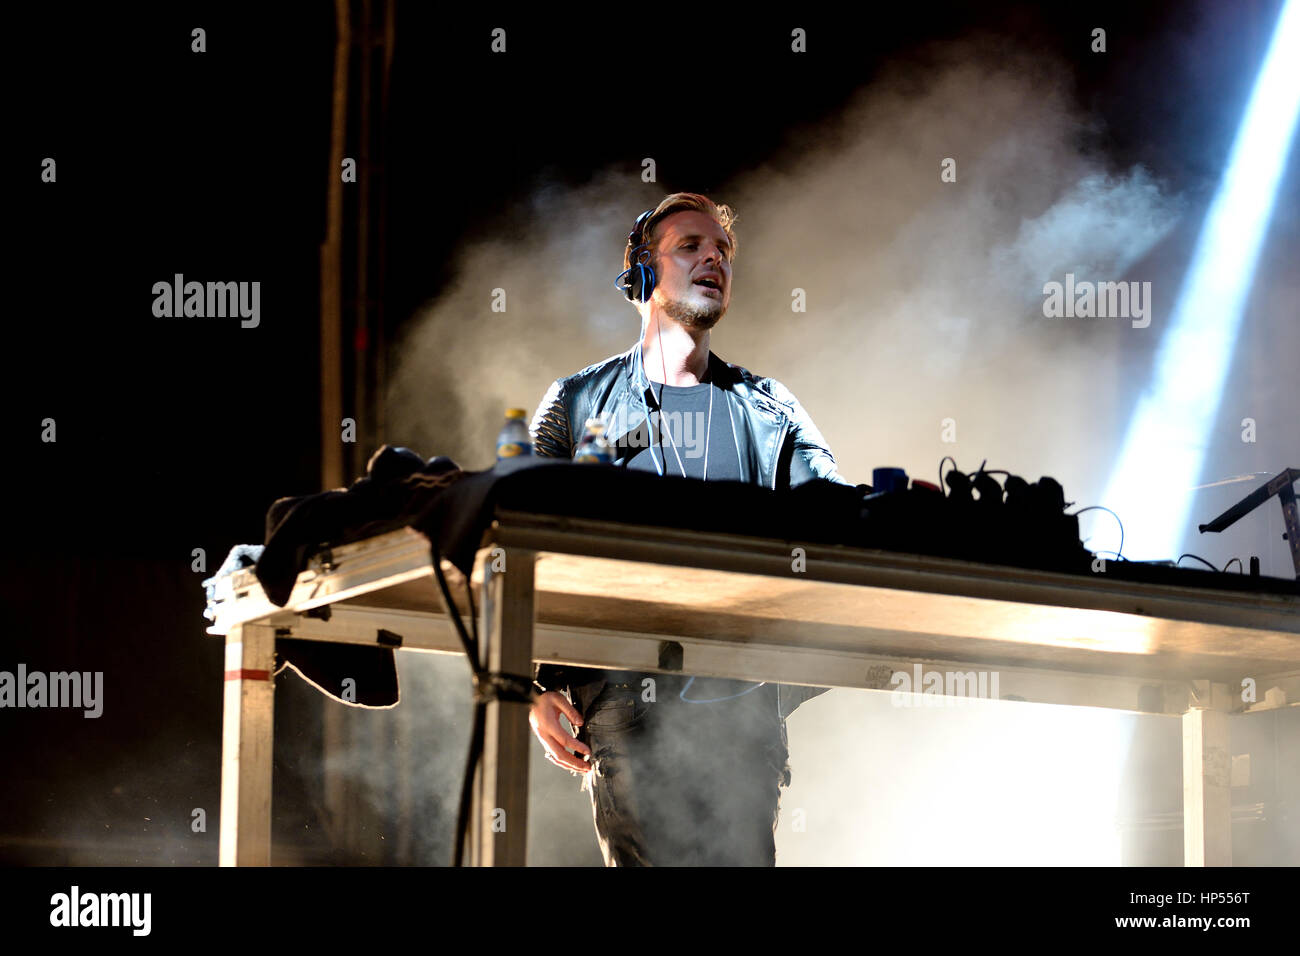 VALENCIA, SPAIN - APR 5: Sigma (band) performs at MBC Fest on April 5, 2015 in Valencia, Spain. - Stock Image